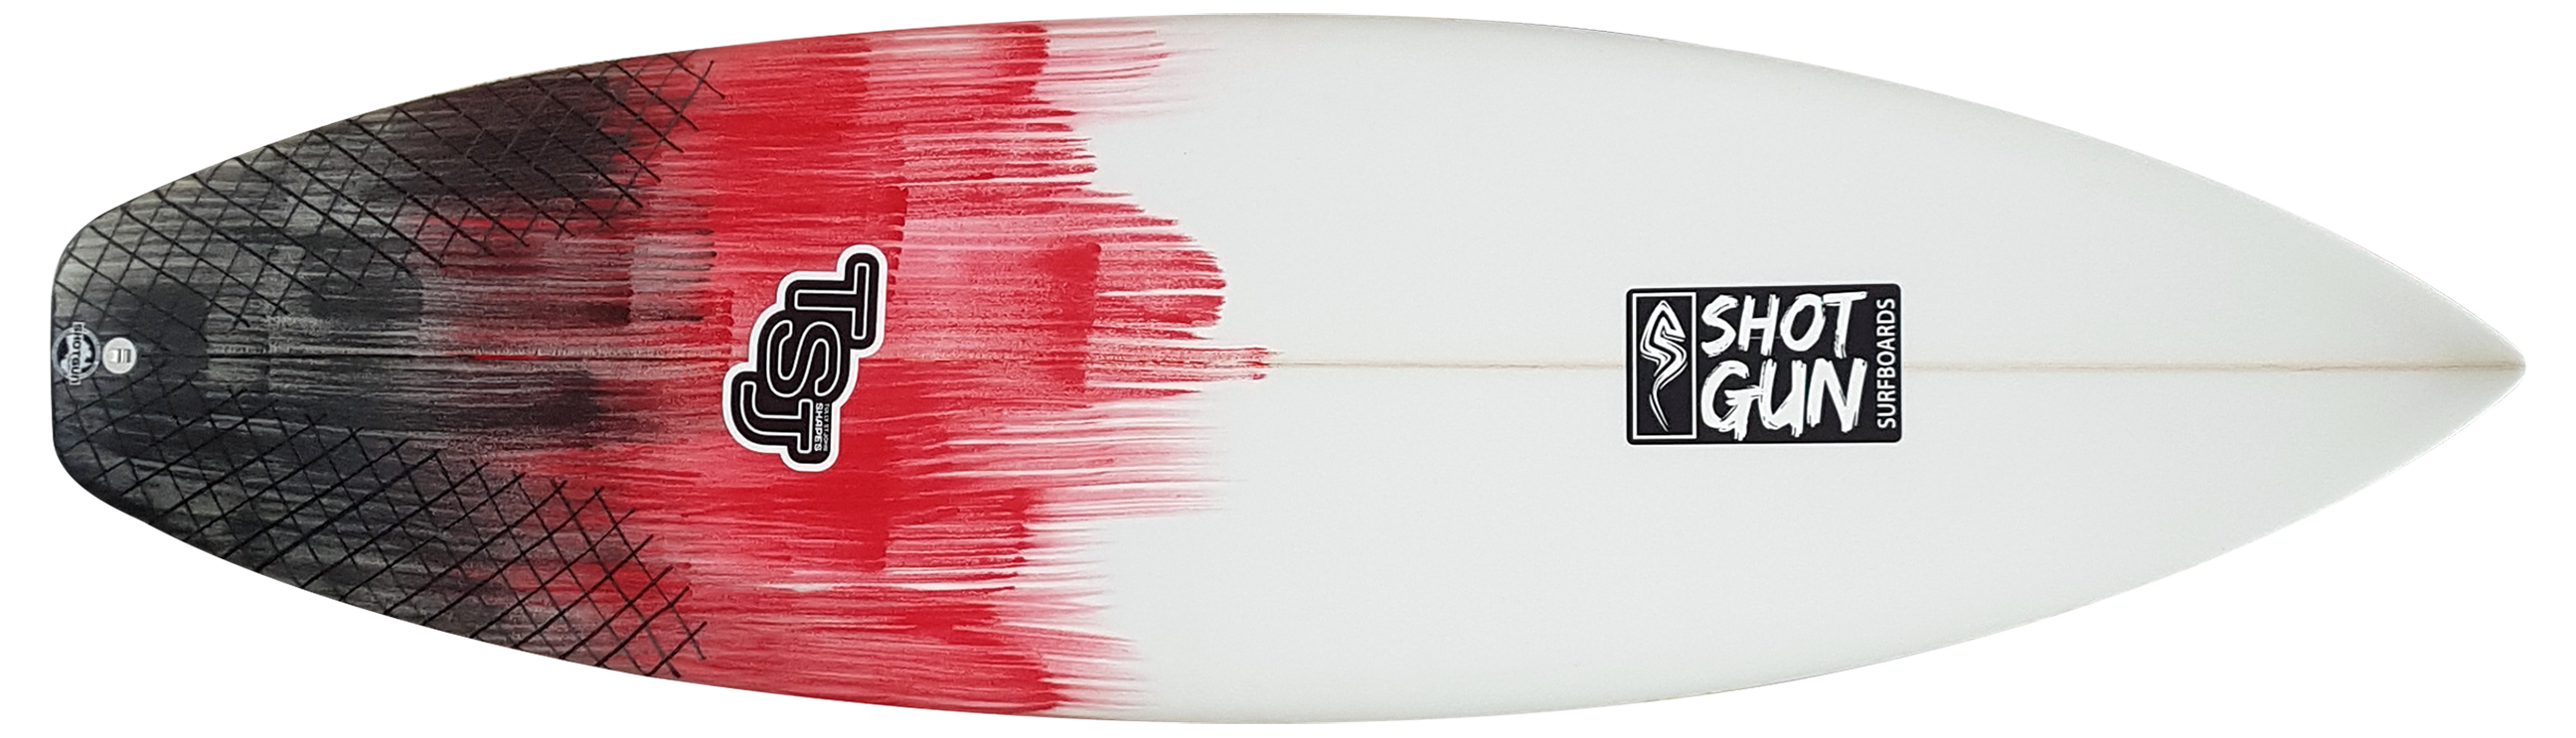 Surfboard PNG - 58027